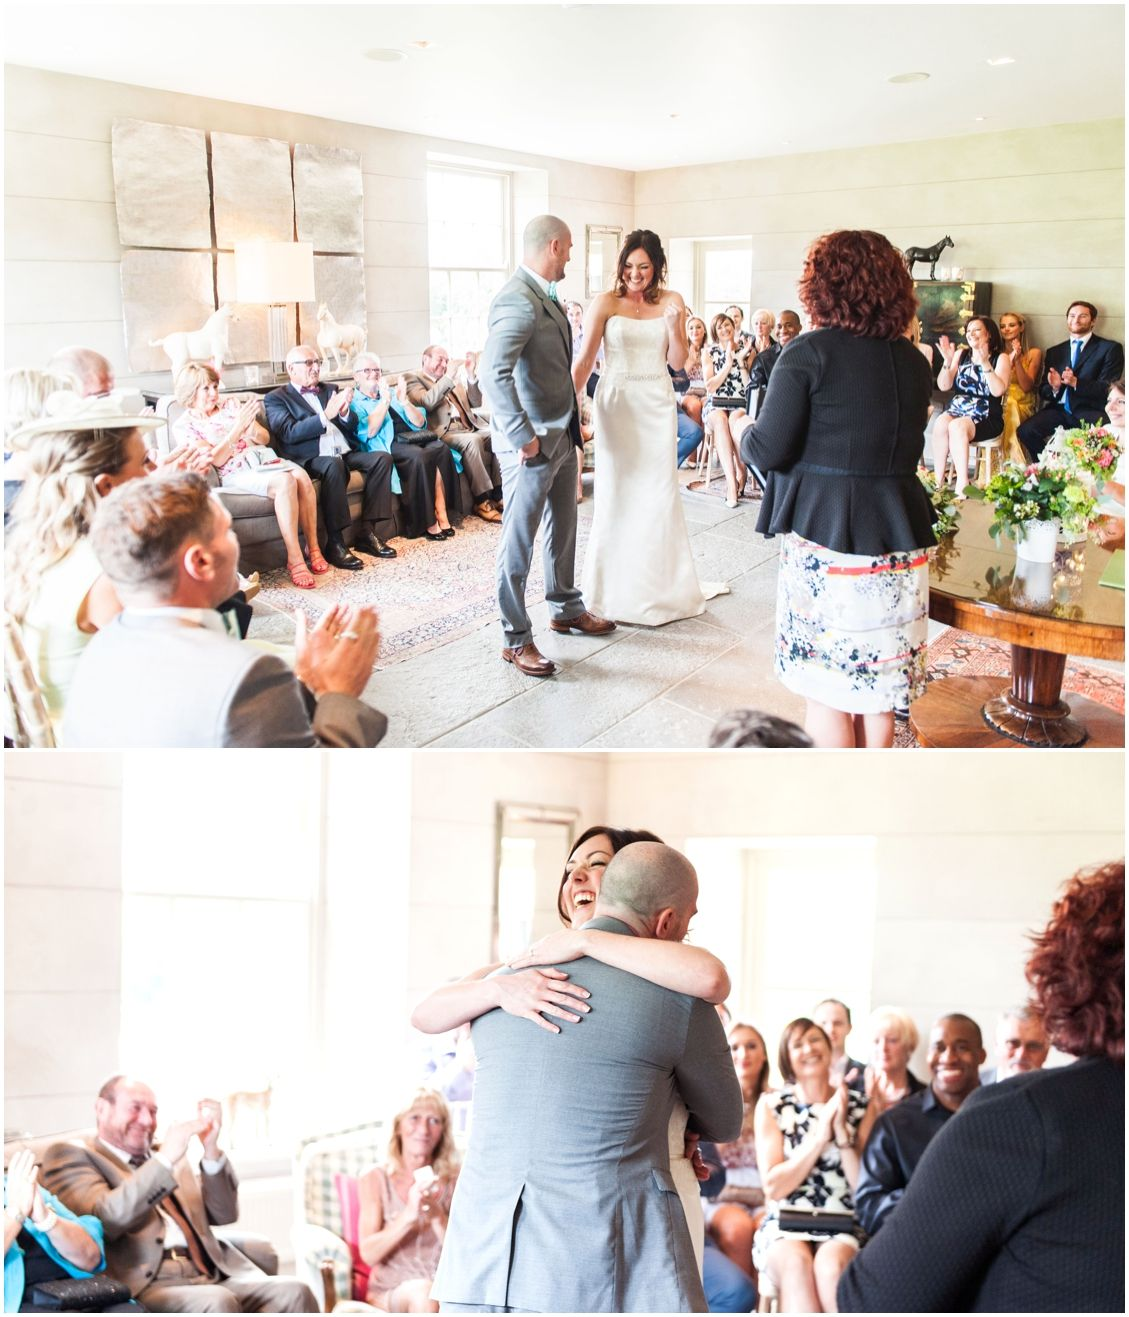 Axnoller House Wedding Ceremony In The Living Room Dorset Wedding In A Beautiful Boutique Venu Indoor Wedding Ceremonies Creative Wedding Photography Ceremony